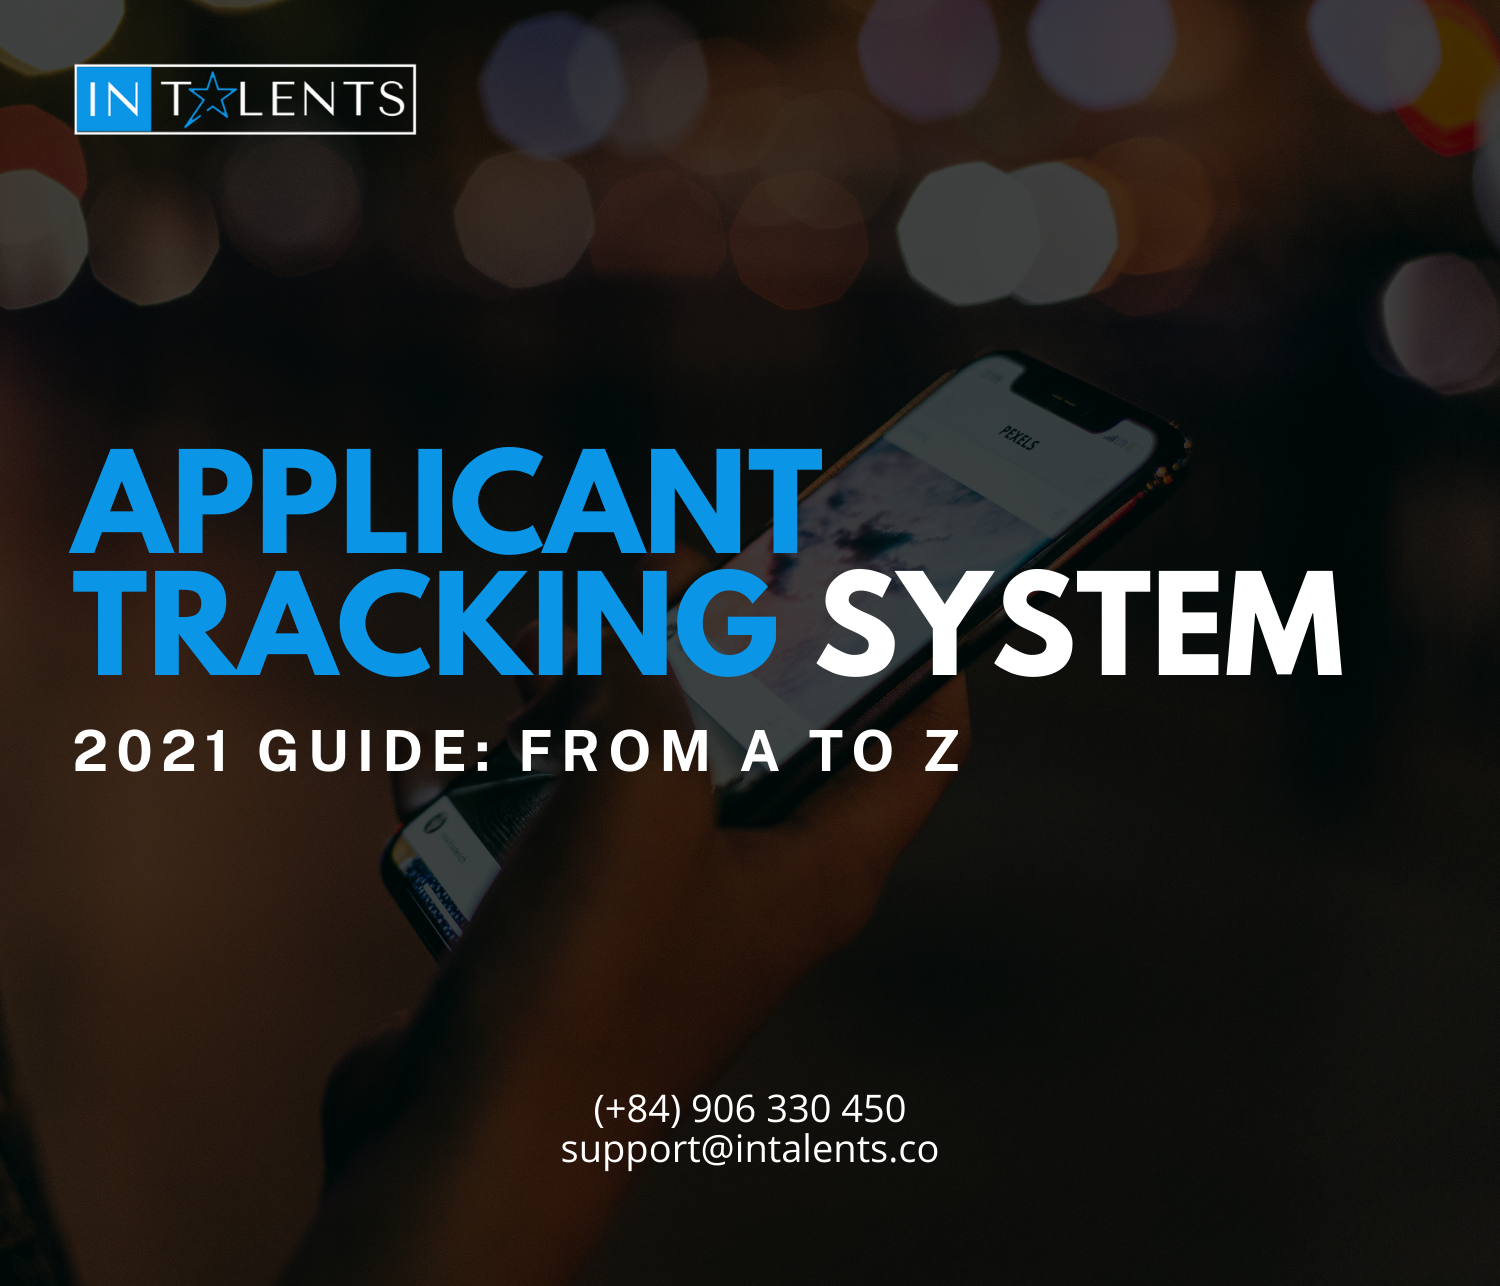 APPLICANT TRACKING SYSTEM GUIDE 2021: FROM A – Z